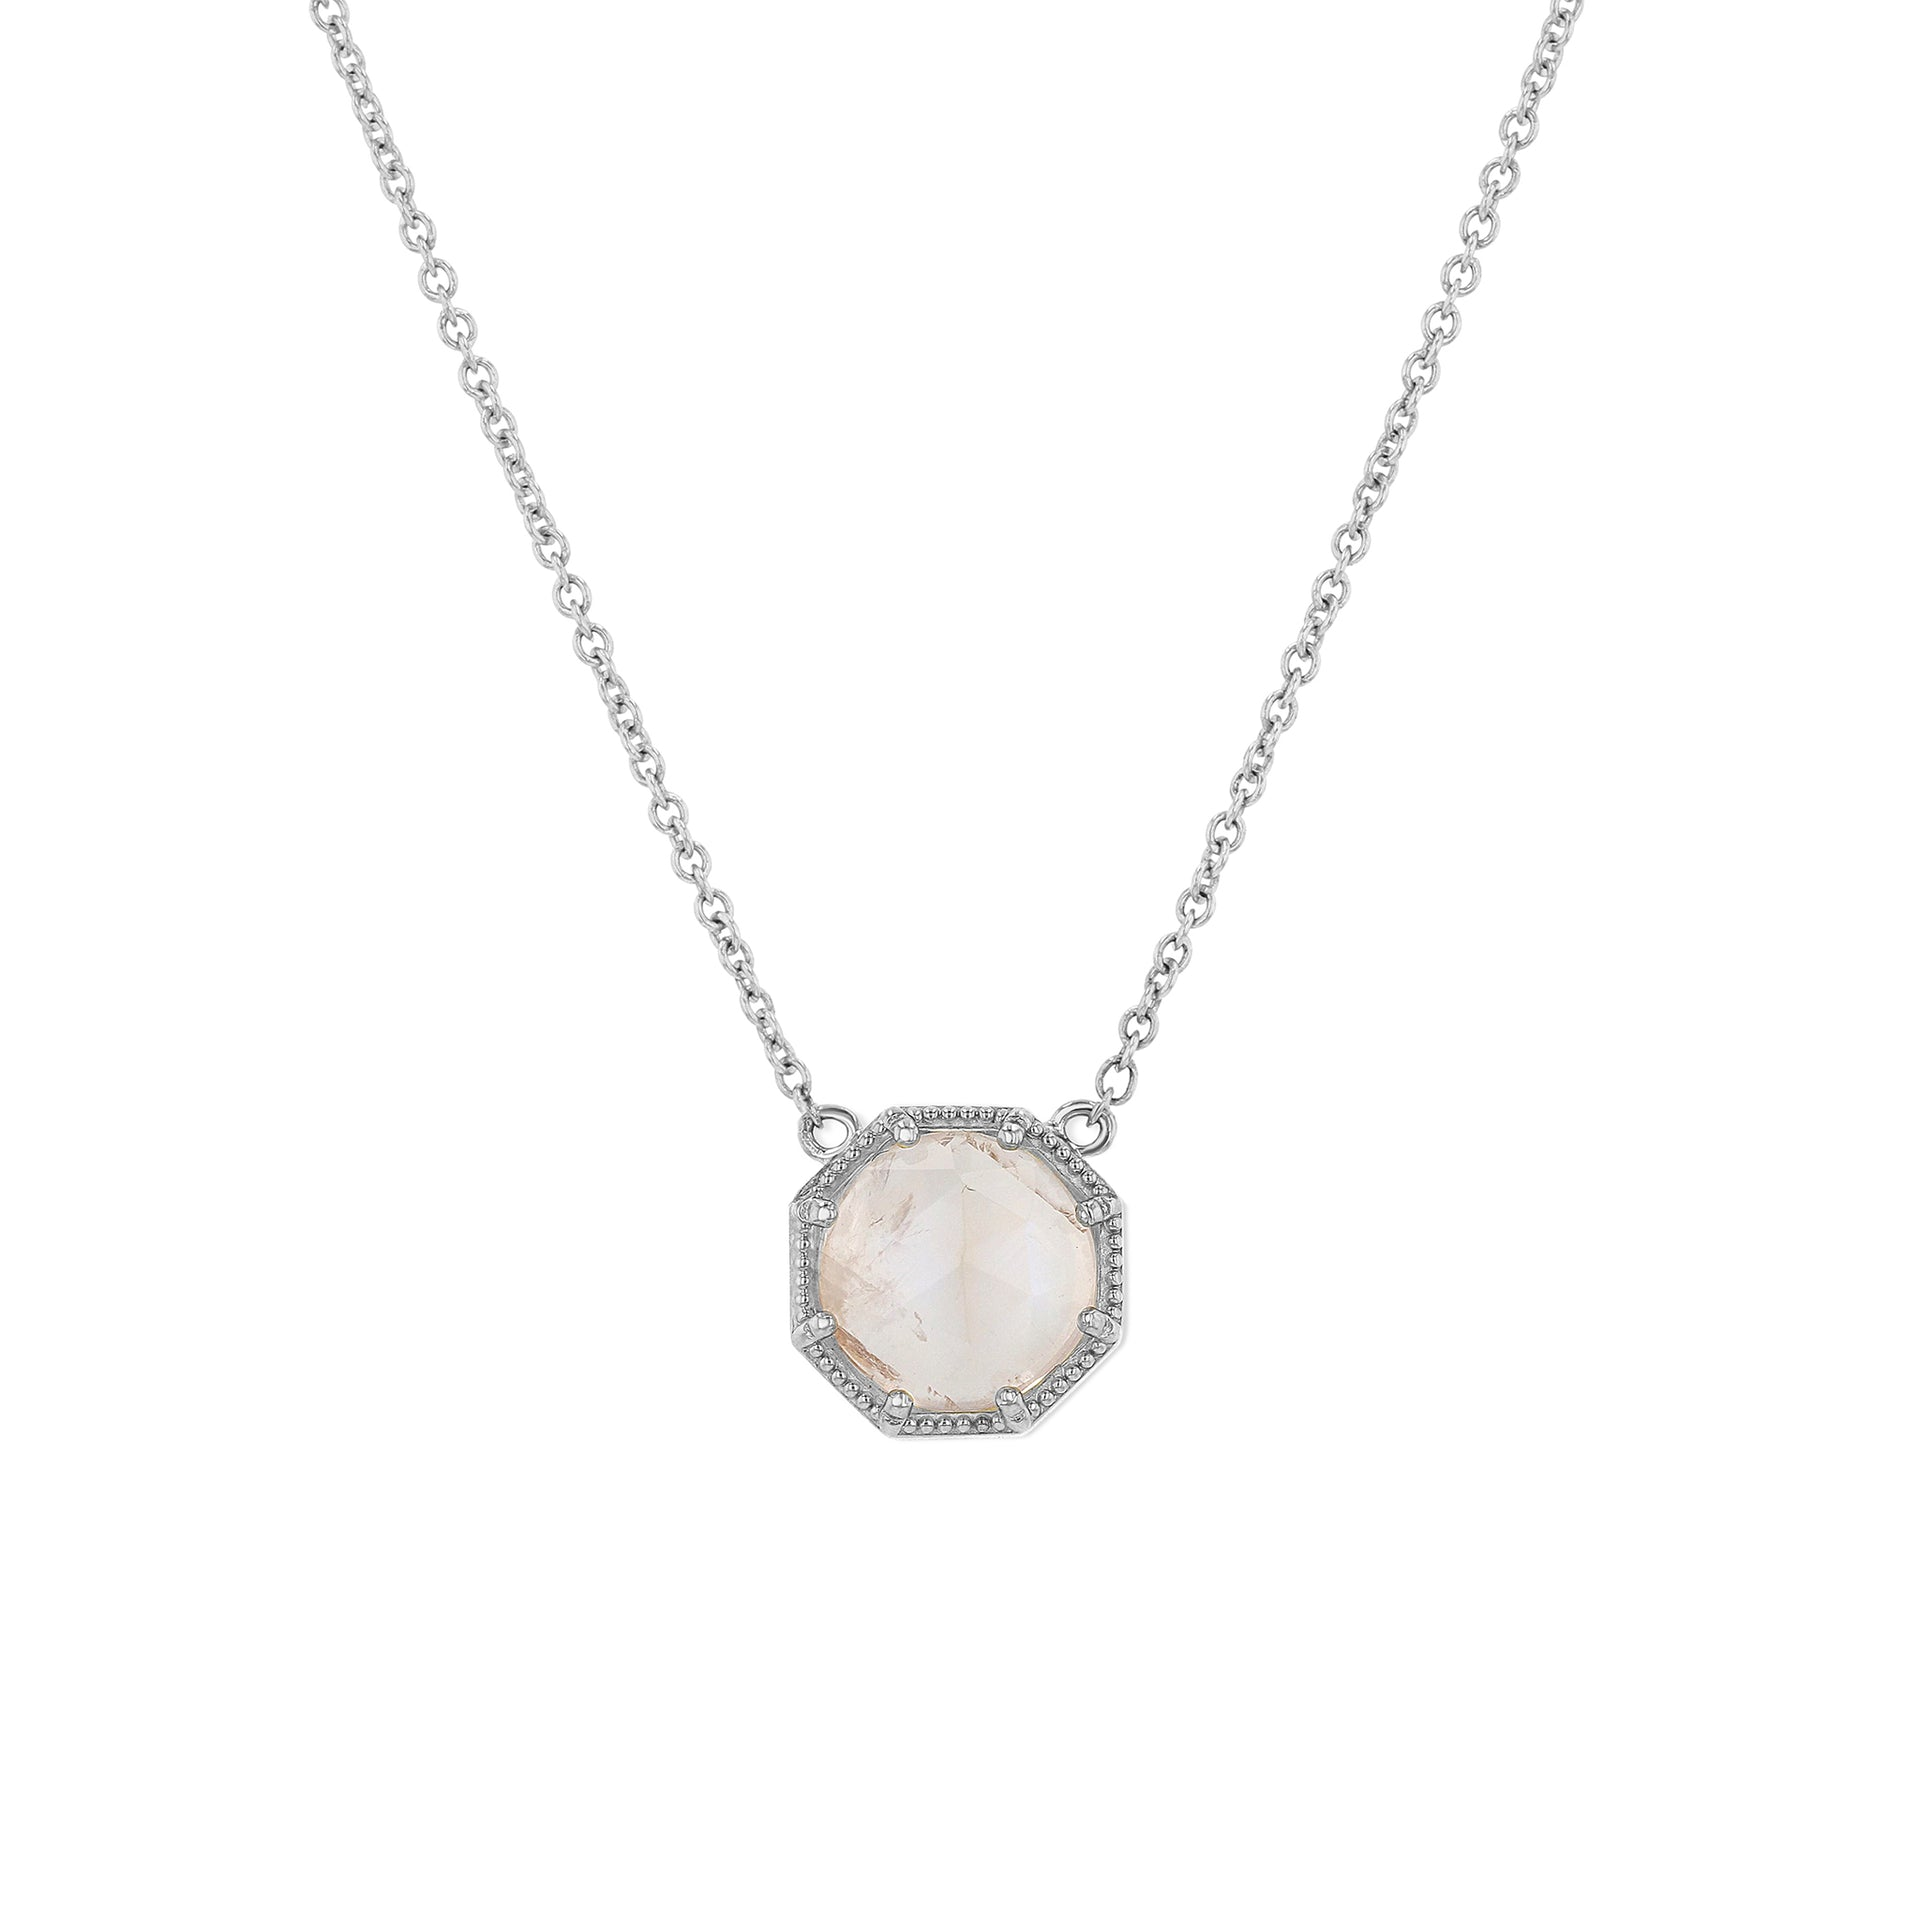 Maman Crown Bezel Moonstone Necklace - RTS